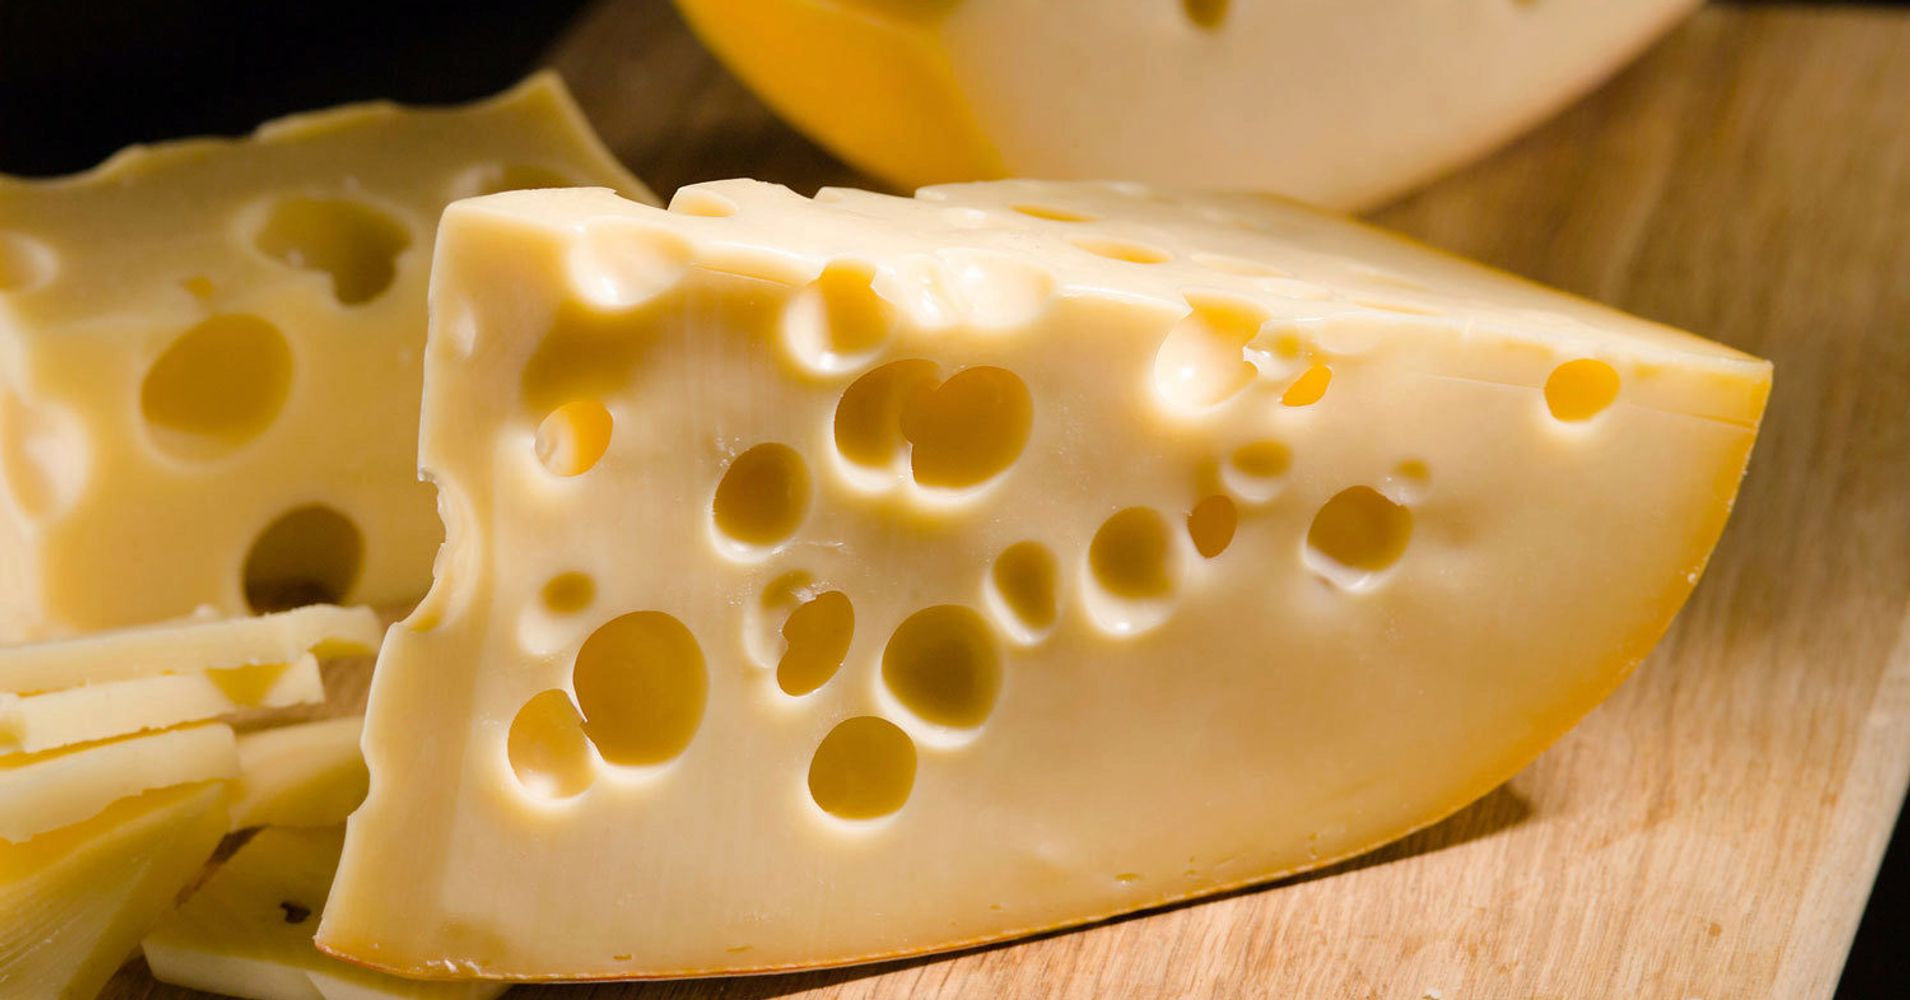 This Week, What About Cheese? | HuffPost Life